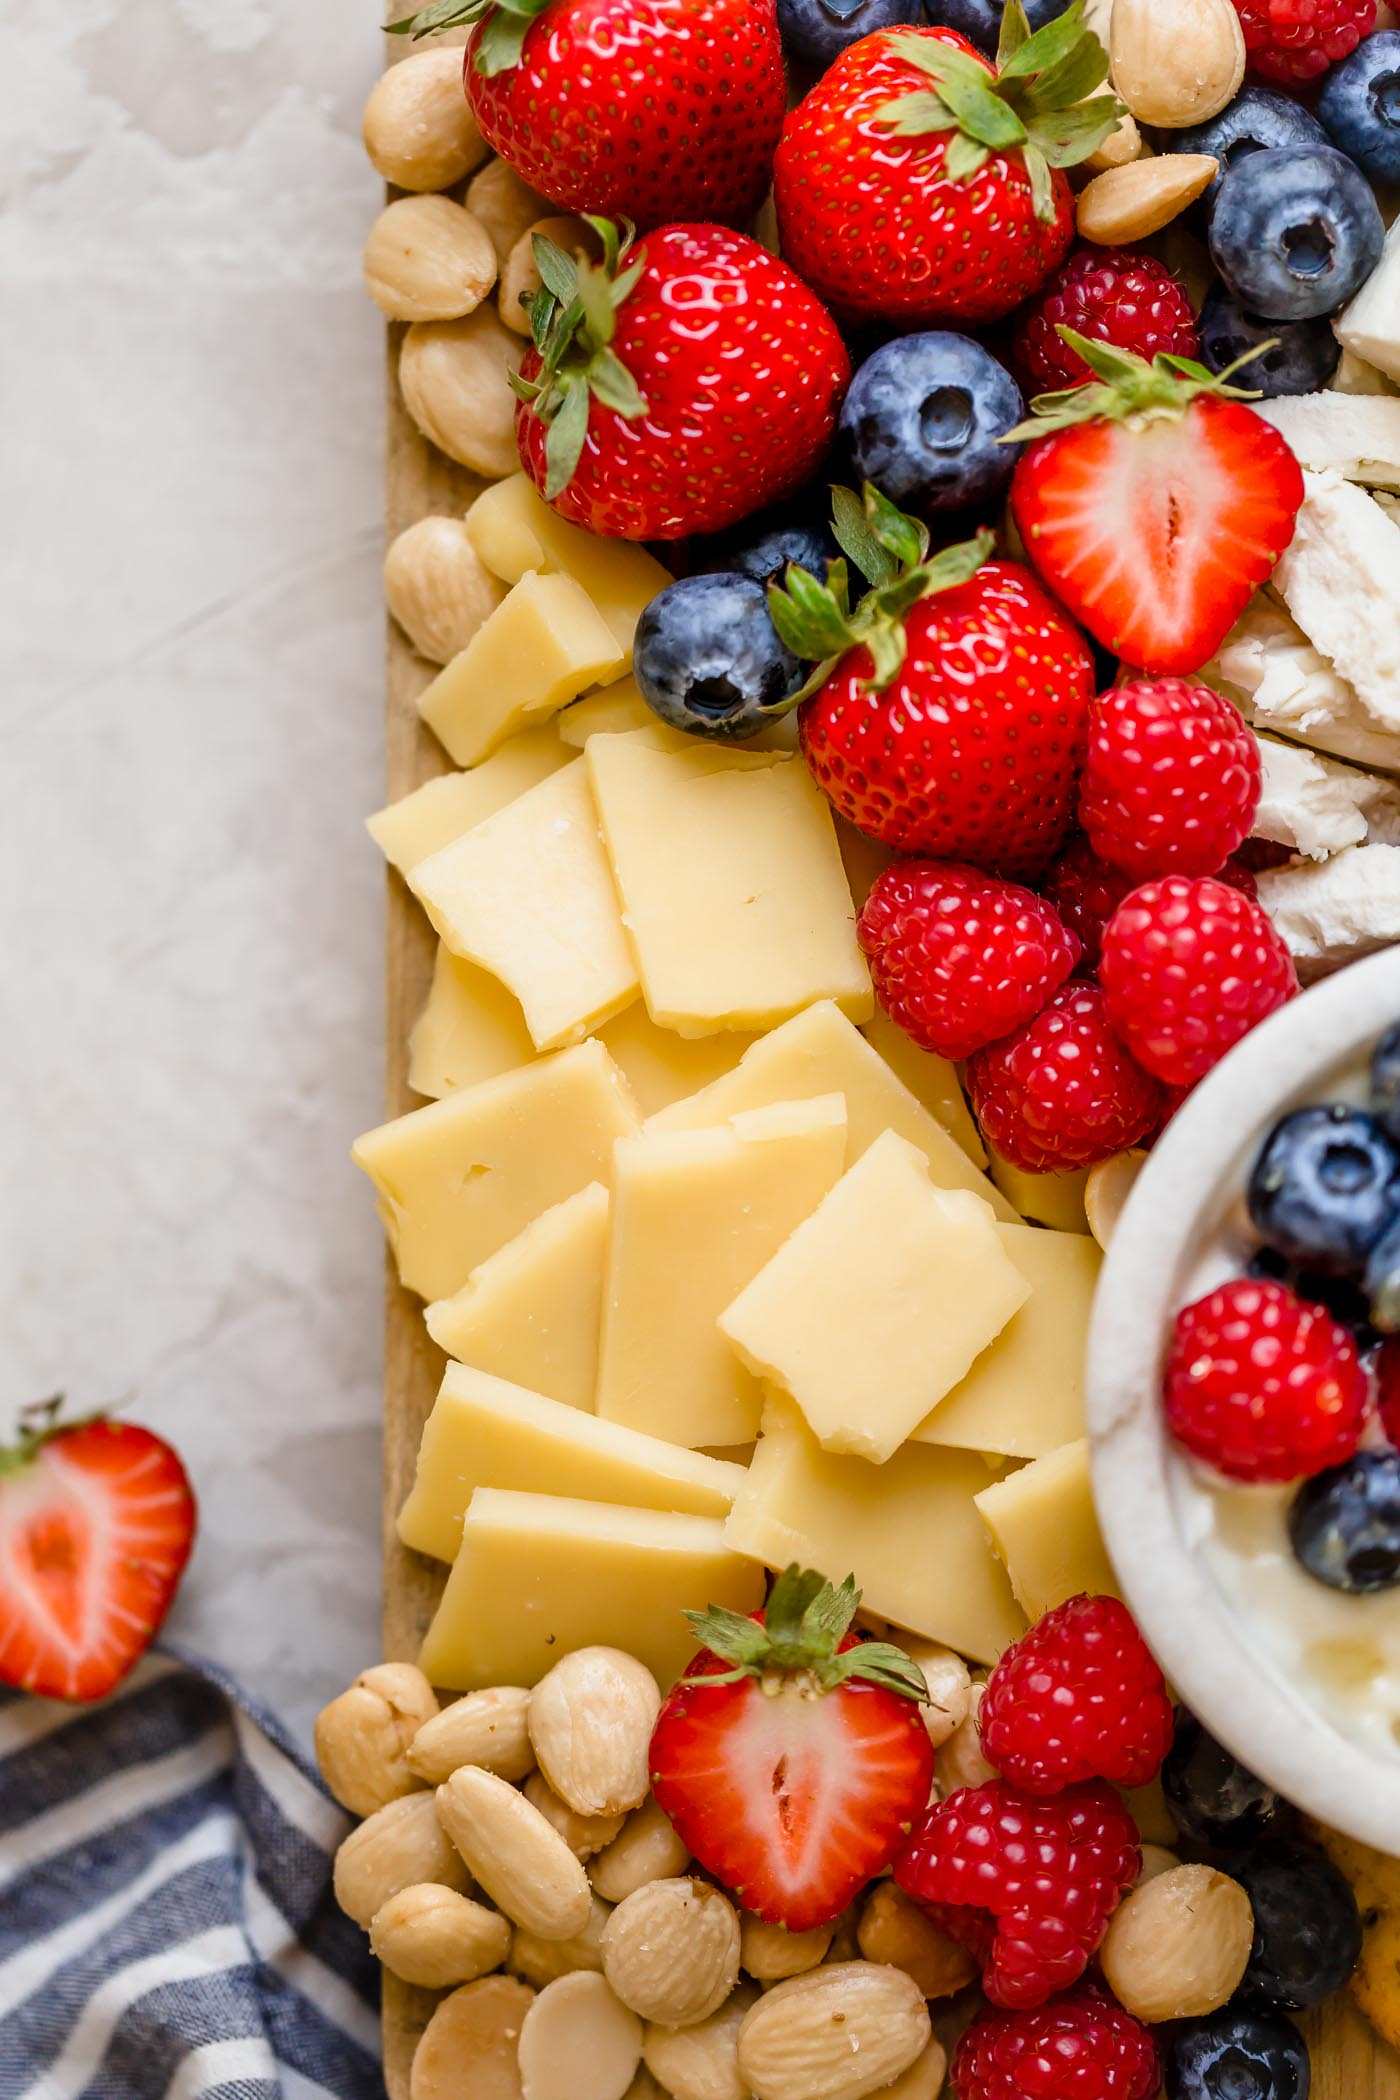 a summer berry cheese board filled with strawberries, raspberries, blueberries, & the perfect cheeses to pair with cheese boards. this summer berry cheese board is an easy & fun appetizer or snack to serve at parties & barbeques all summer long! #playswellwithbutter #summerberrycheeseboard #cheeseboard #summercheeseboard #cheeseboardidea #appetizer #appetizersforparty #easyappetizers #makeaheadappetizers